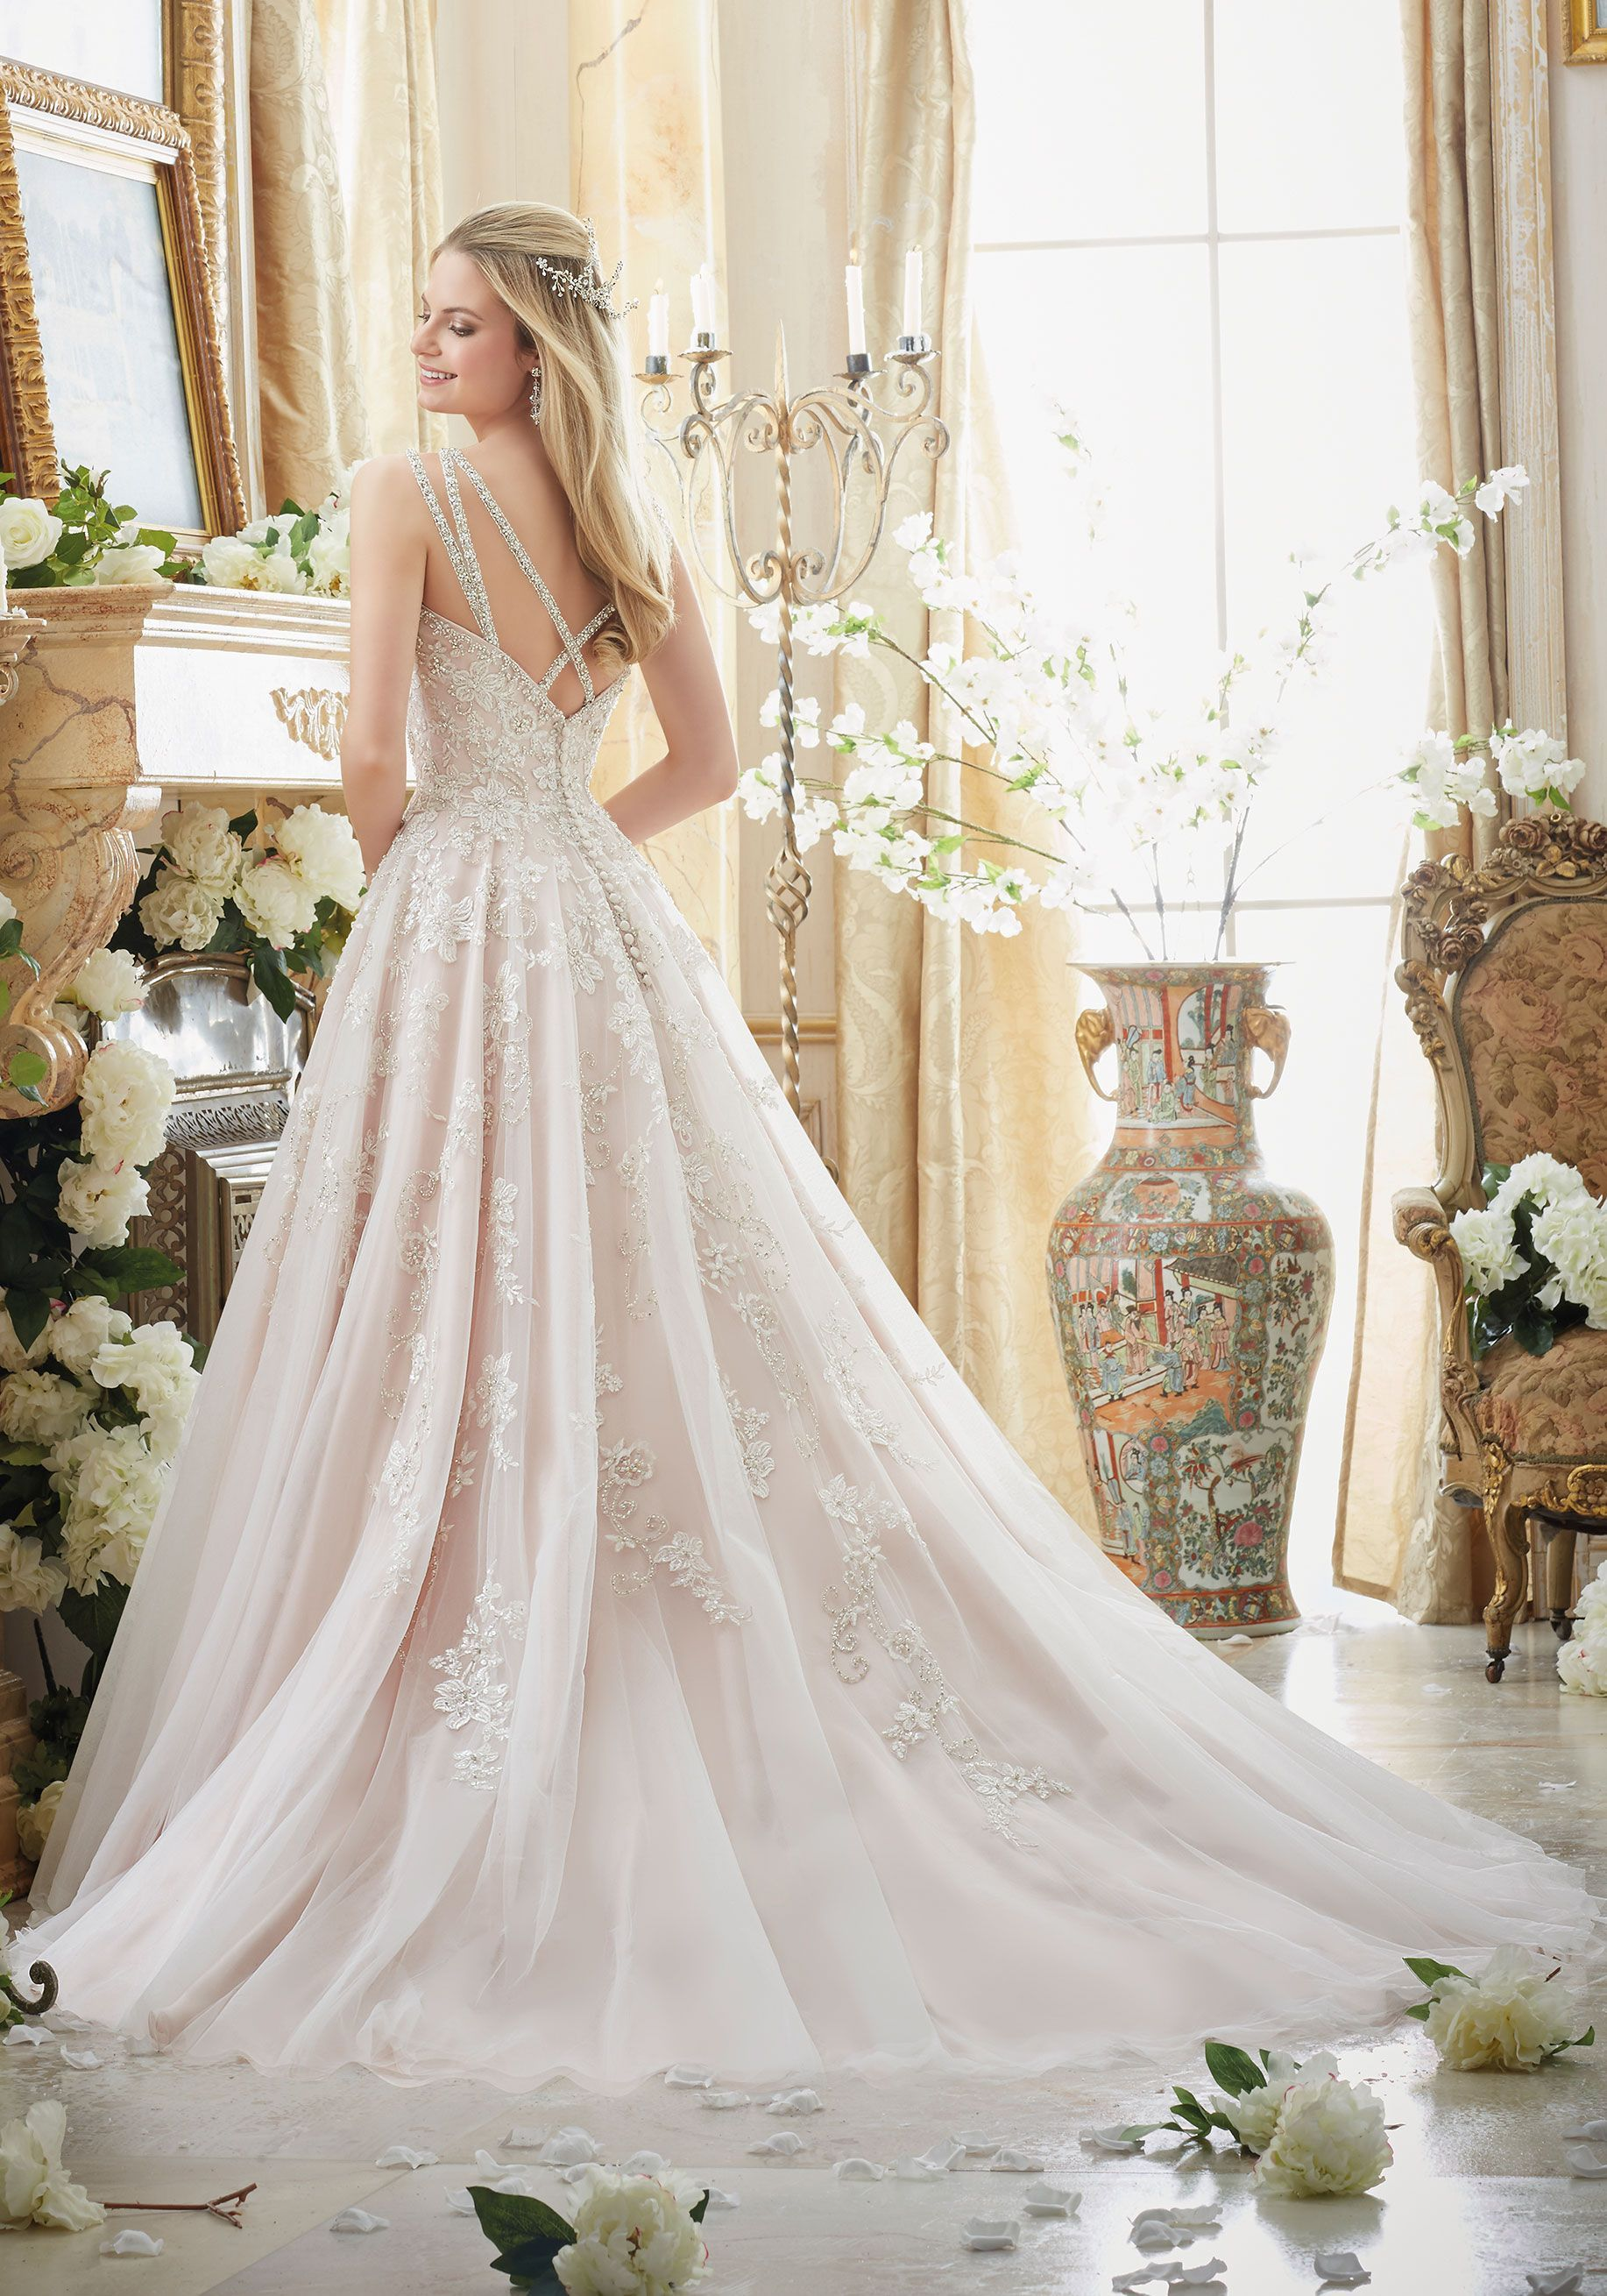 White and silver wedding dresses  Elaborately Beaded Embroidery on Soft Tulle Ball Gown Wedding Dress